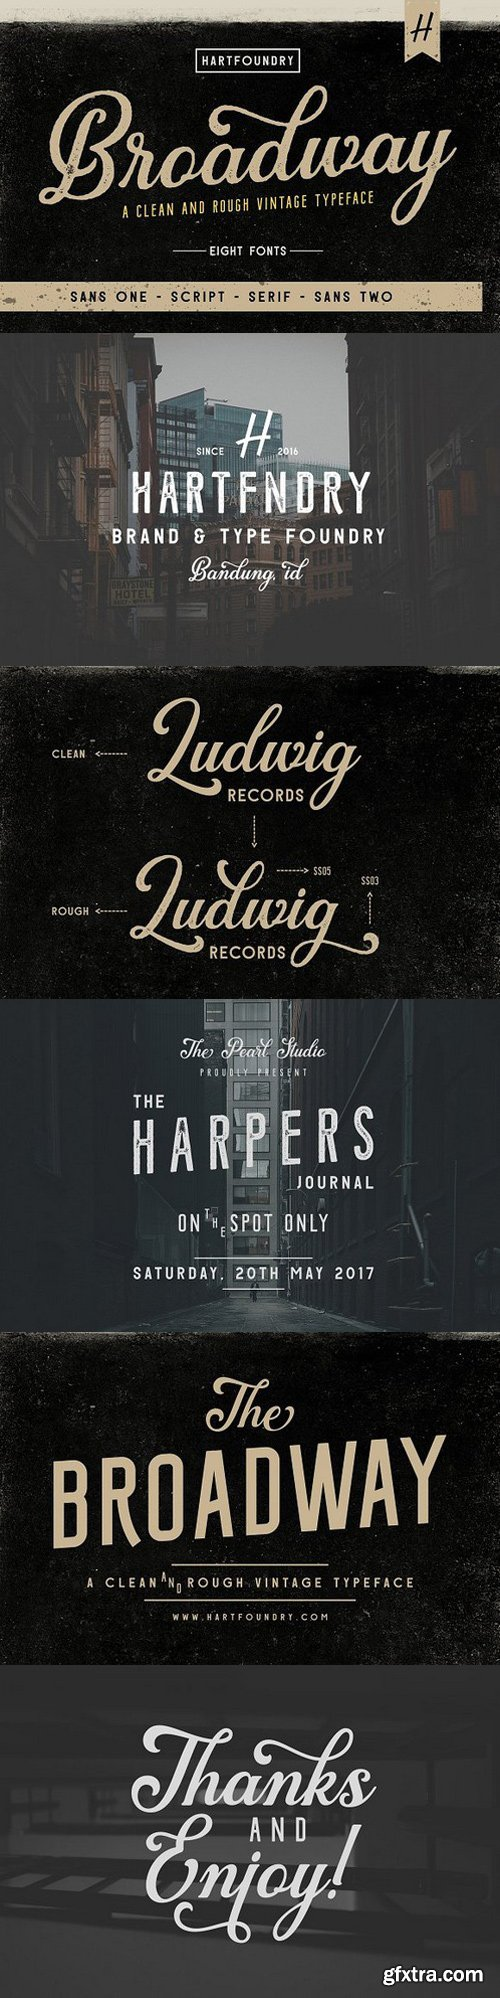 Download CM - Broadway   Font Pack 1518822 (With images)   Font ...